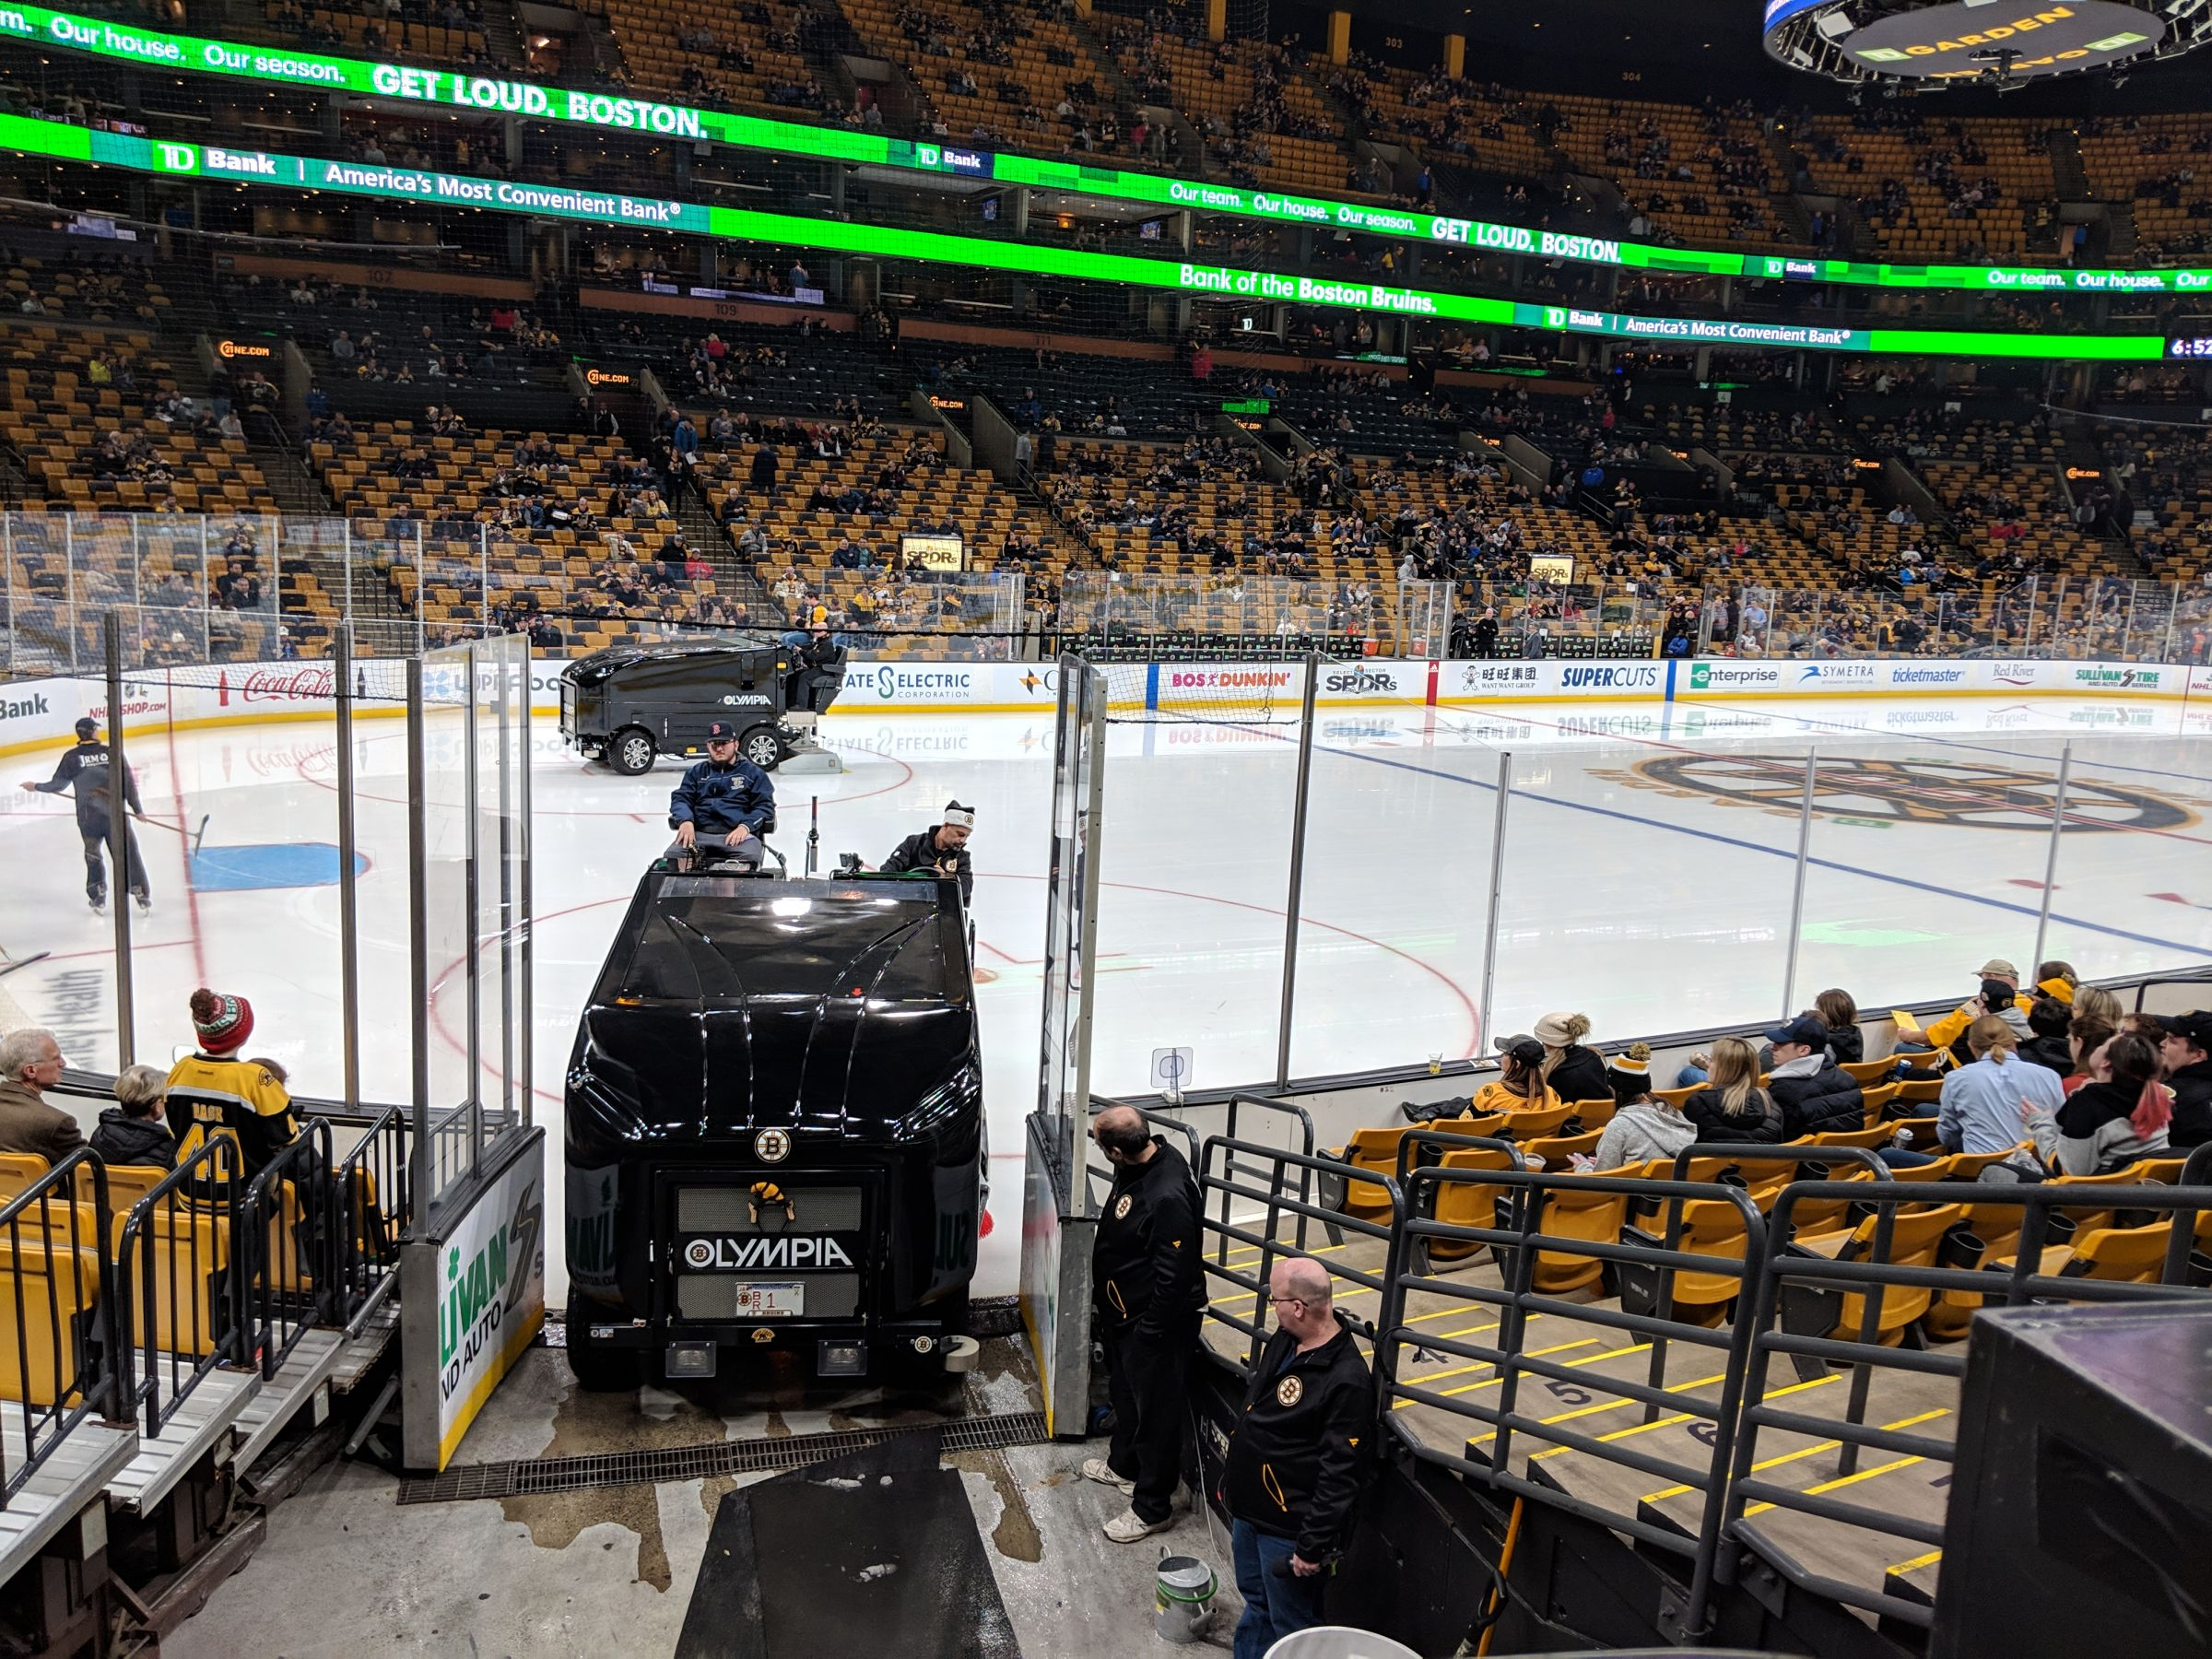 Boston Bruins Seat View for TD Garden Loge 15, Row 11, Seat 6